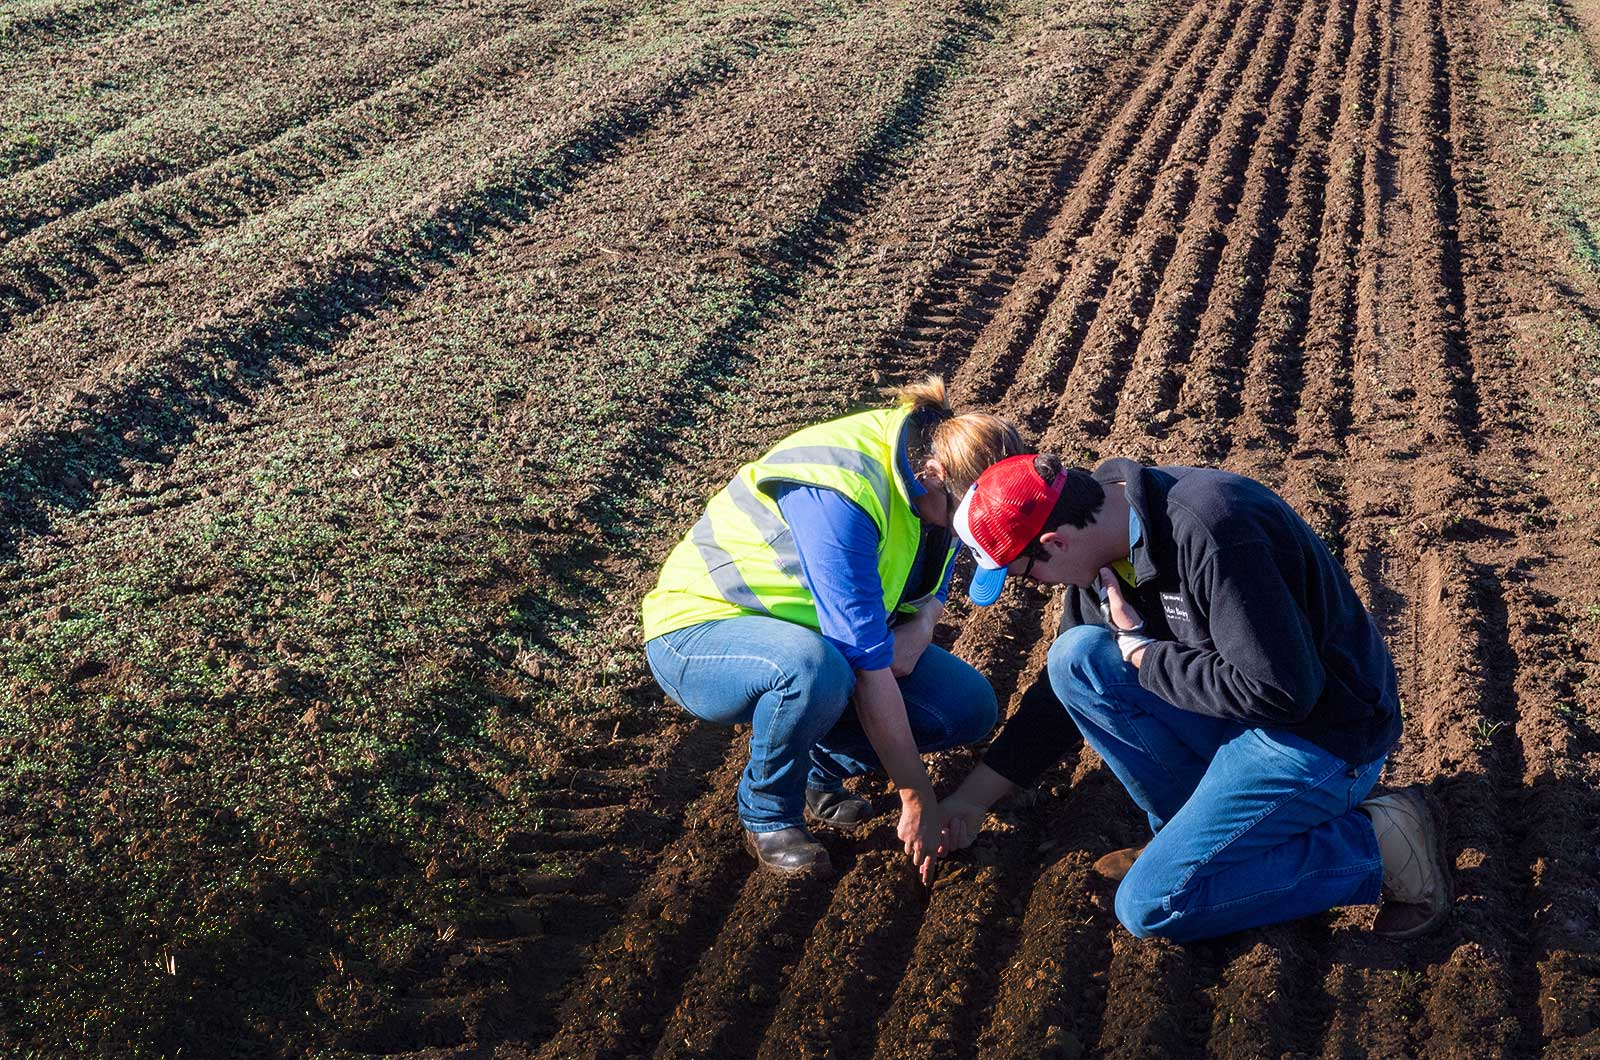 Farmers measuring seed depth